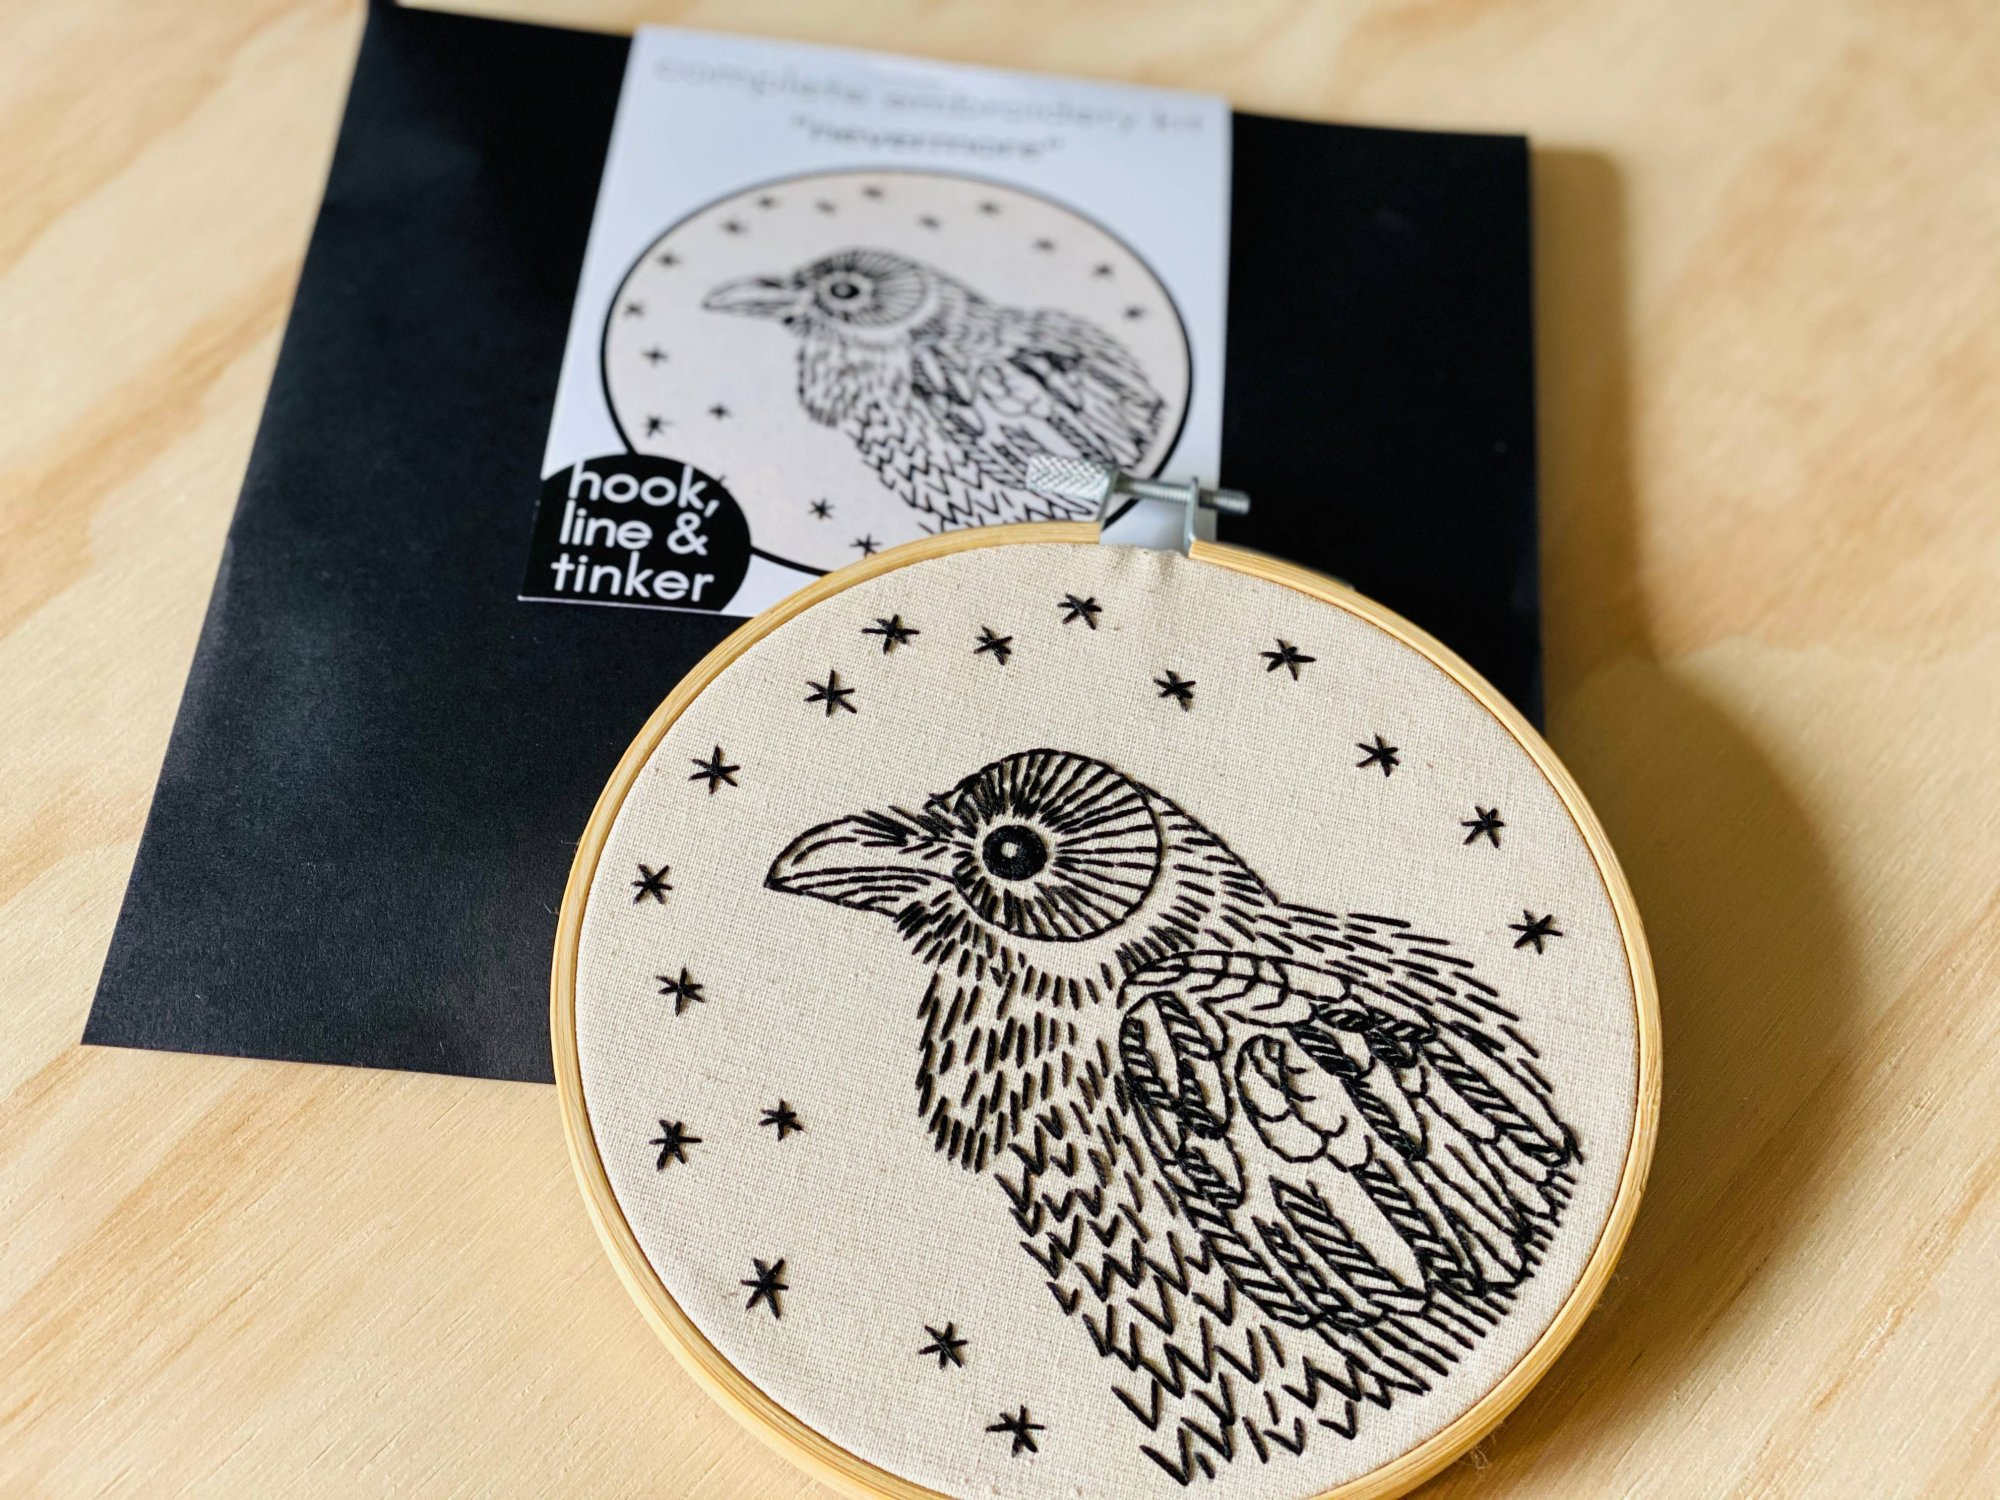 Embroidery Kit - Nevermore - Hook, Line & Tinker